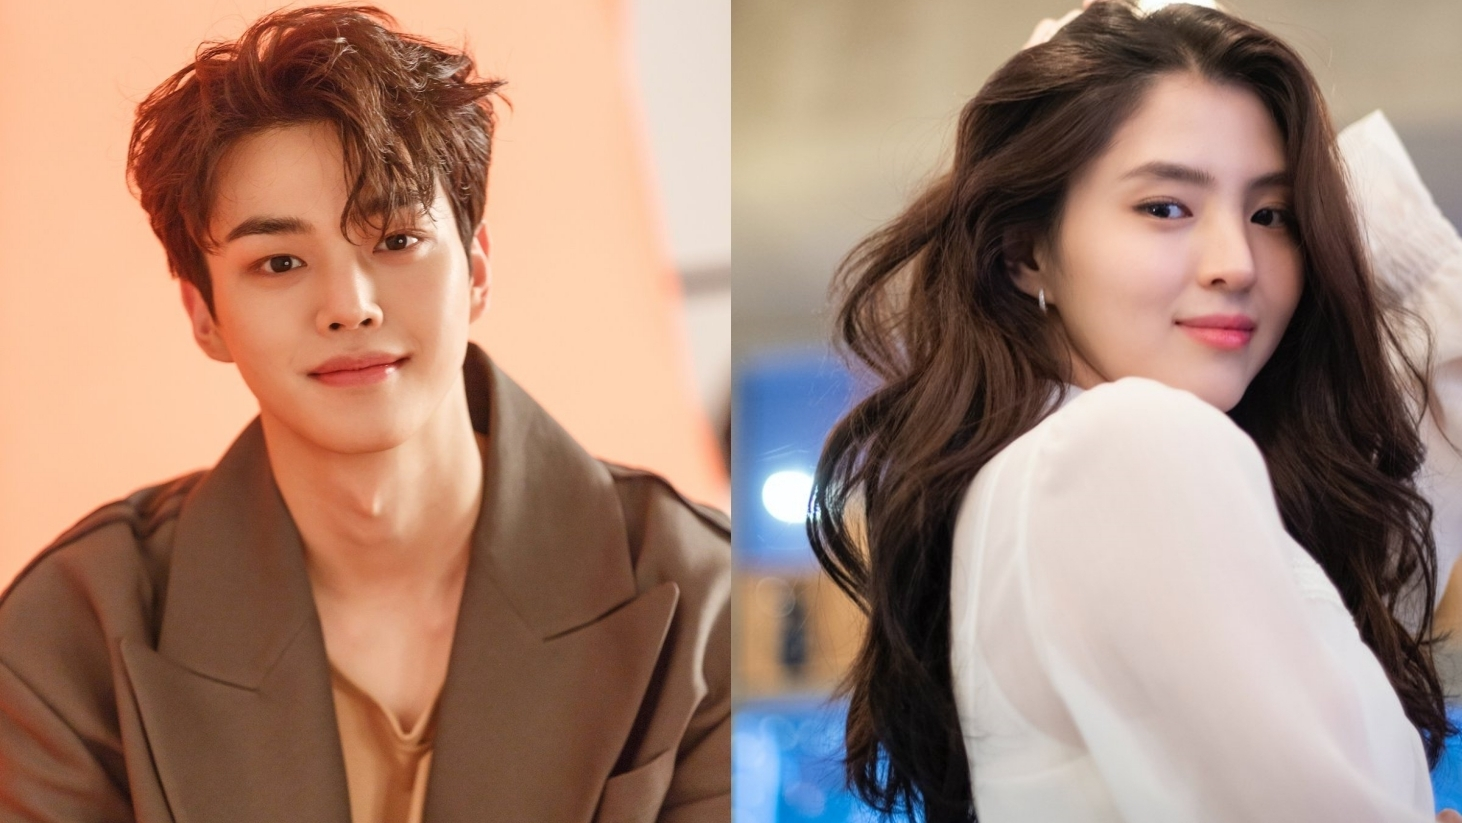 Song Kang and Han So Hee Rumored to be Leading Roles in Webtoon Adaptation Drama 'Though I Know It'